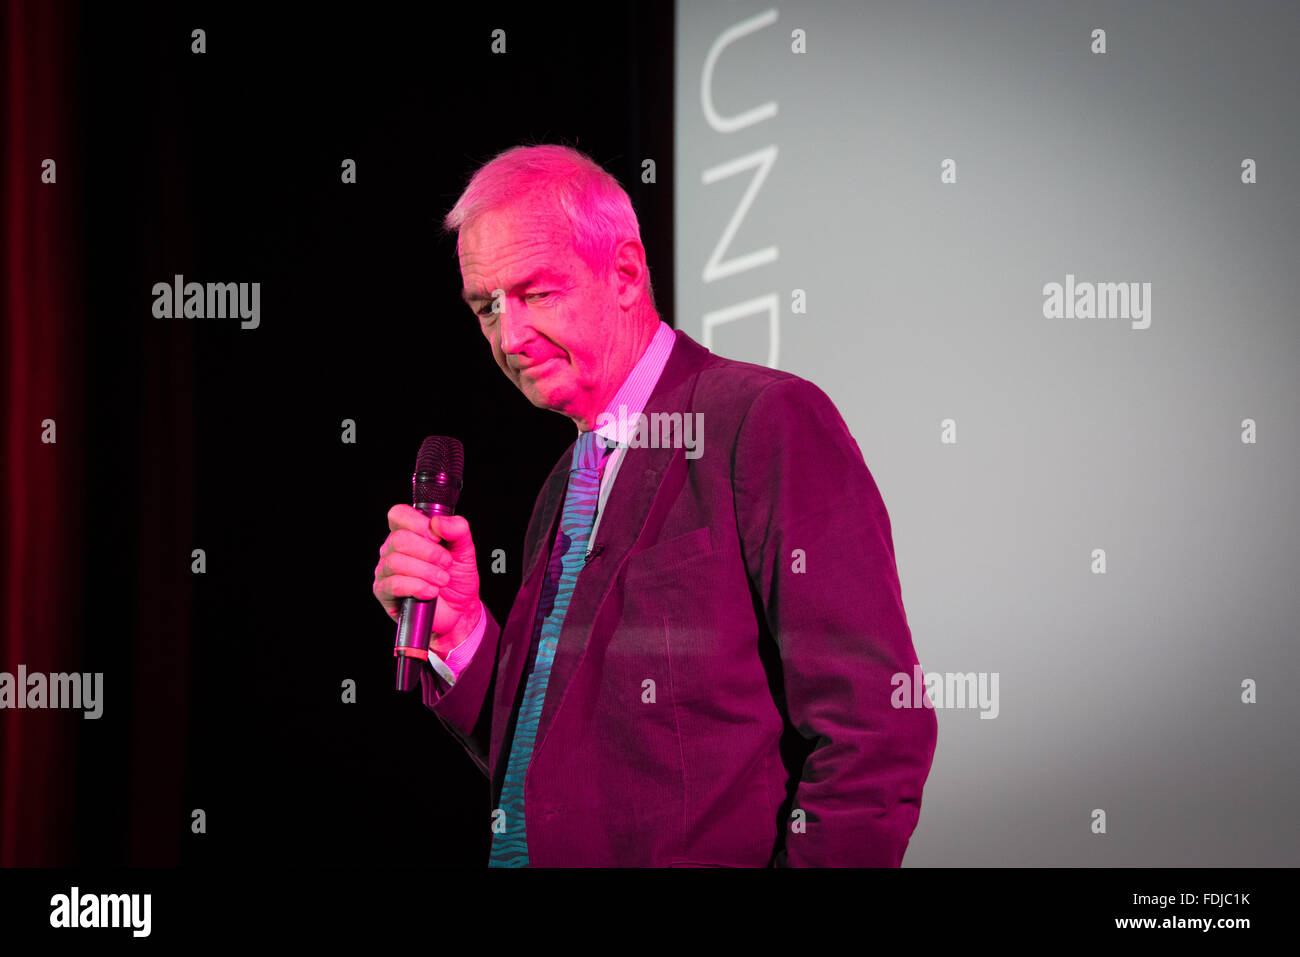 English Journalist and New presenter Jon Snow holding a microphone, lit in electric neon colour. - Stock Image